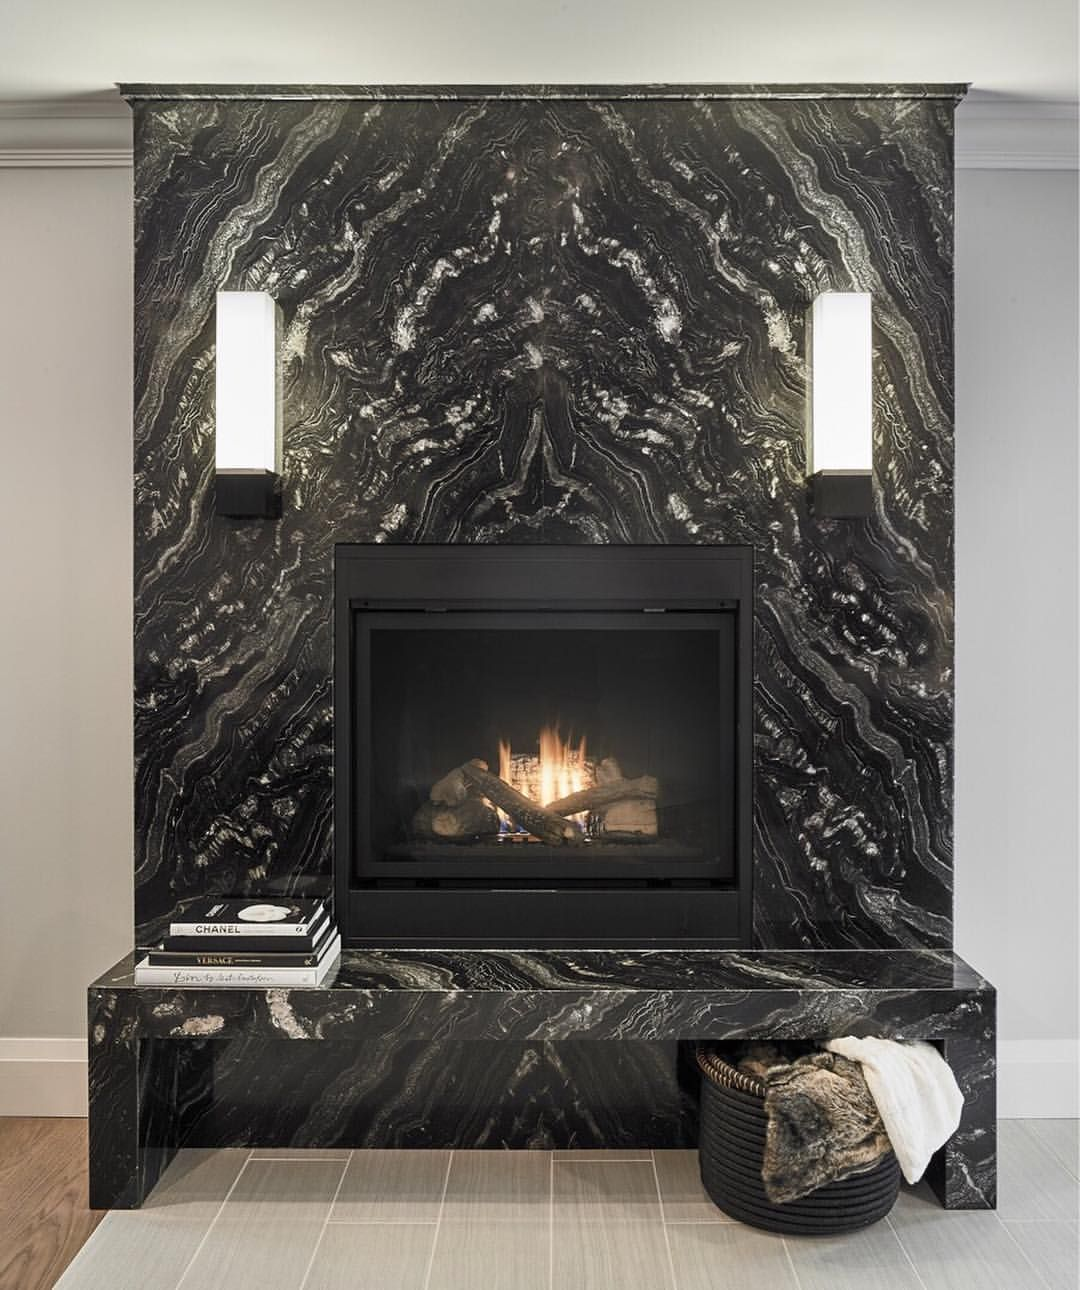 Mcnicol Interior Designs Mcnicolinteriordesigns On Instagram This Fireplace Is The First Thing You Marble Trend Marble Fireplaces Natural Stone Fireplaces